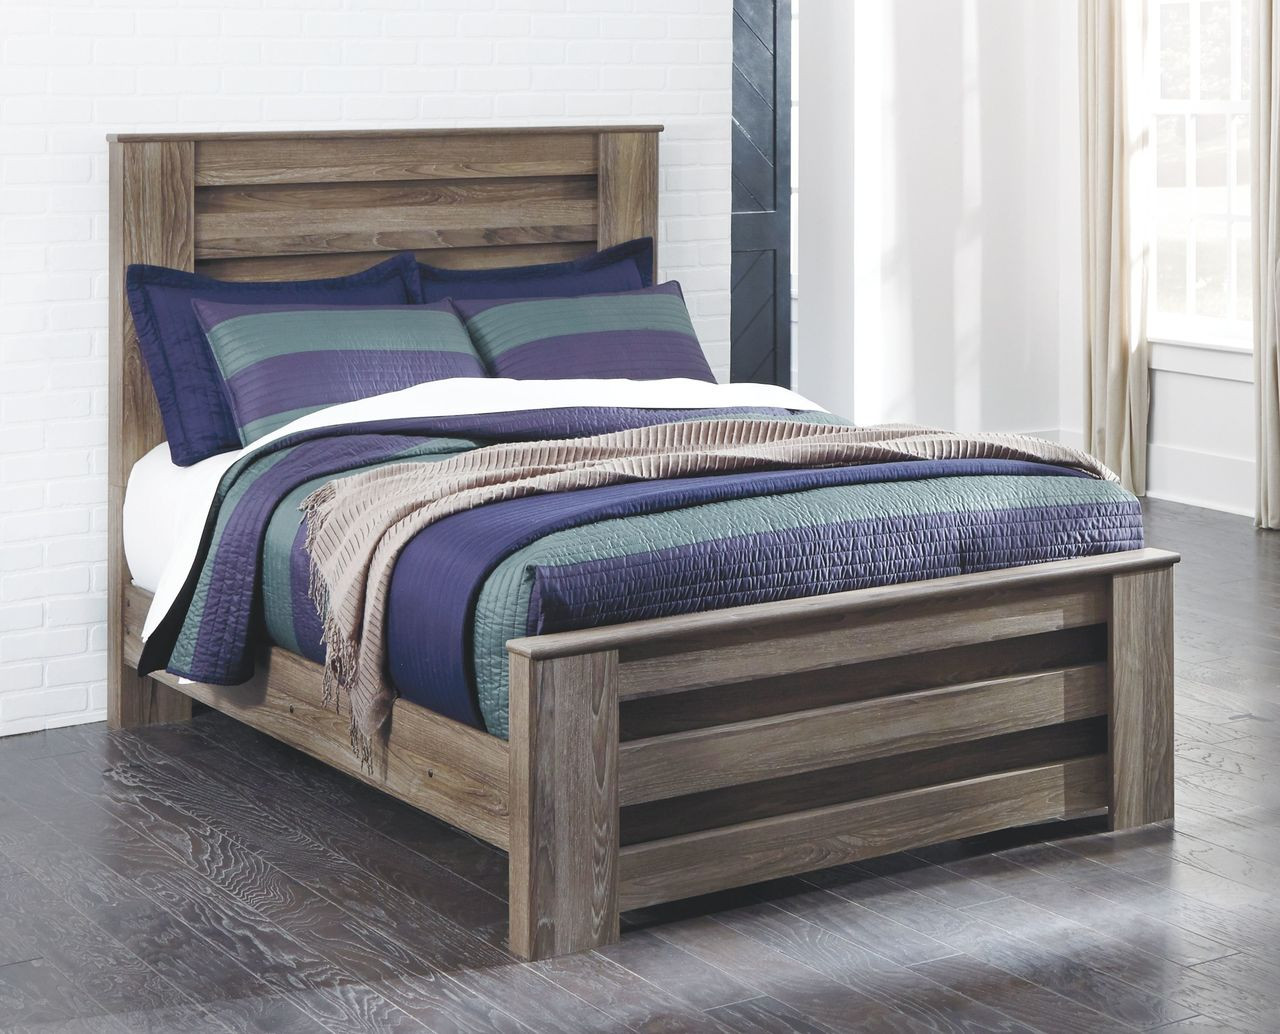 The Zelen Warm Gray Full Panel Bed Available At 5 Star Furniture Serving Dallas Tx And Garland